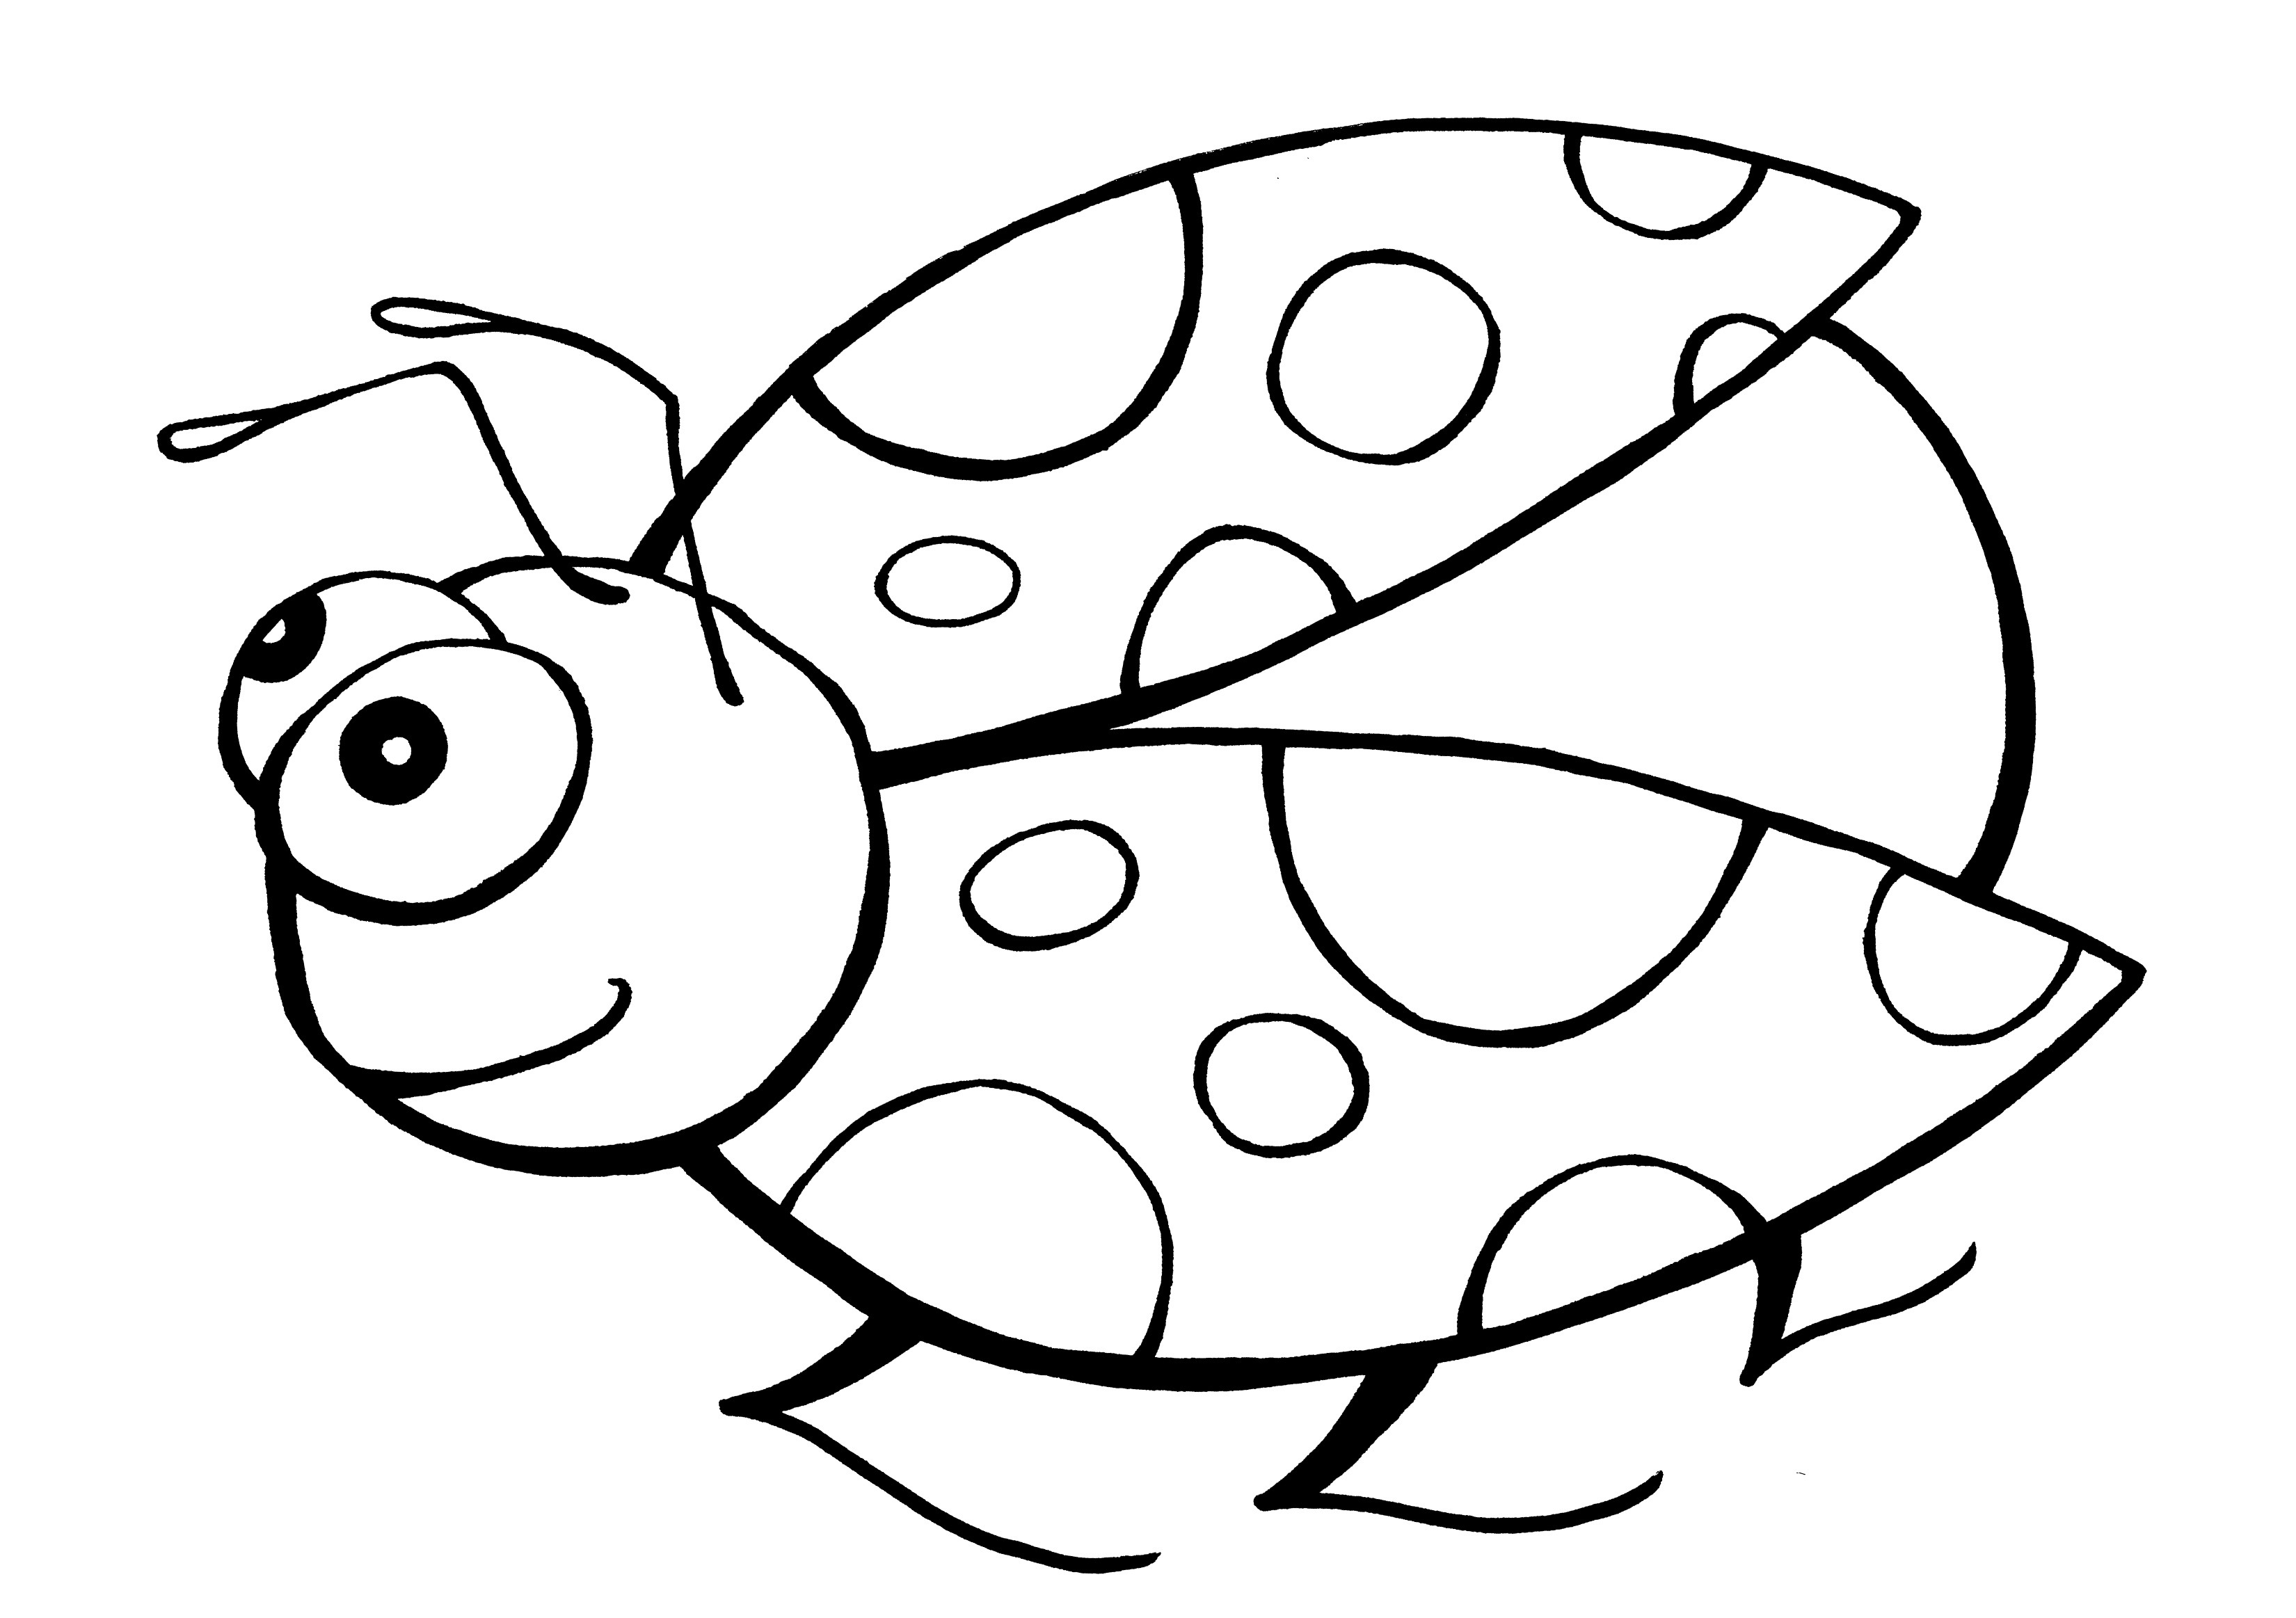 bug coloring pages free printable bug coloring pages for kids pages bug coloring